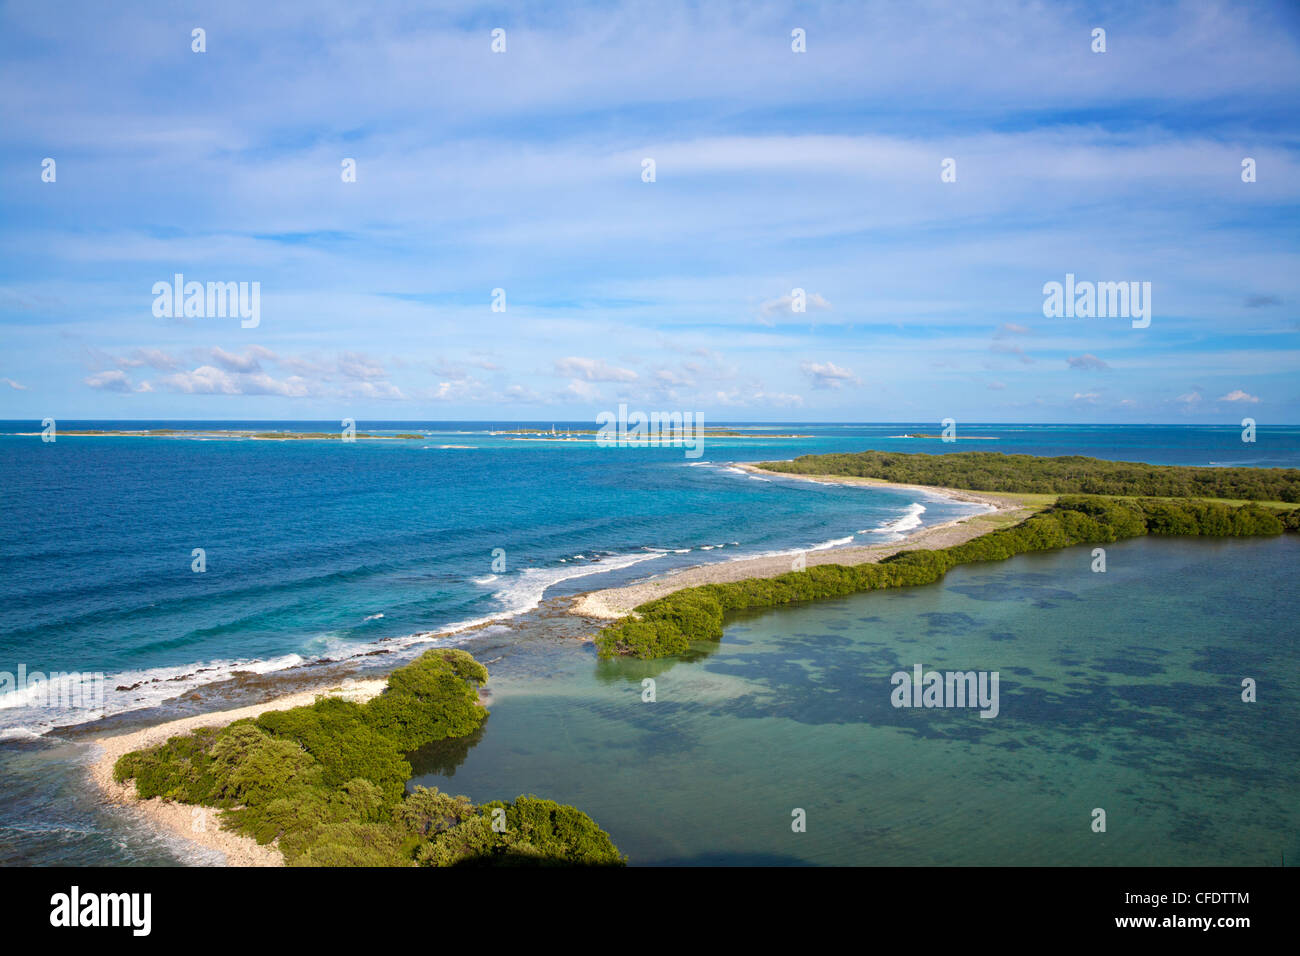 View of Gran Roque, Archipelago Los Roques National Park, Venezuela, South America - Stock Image